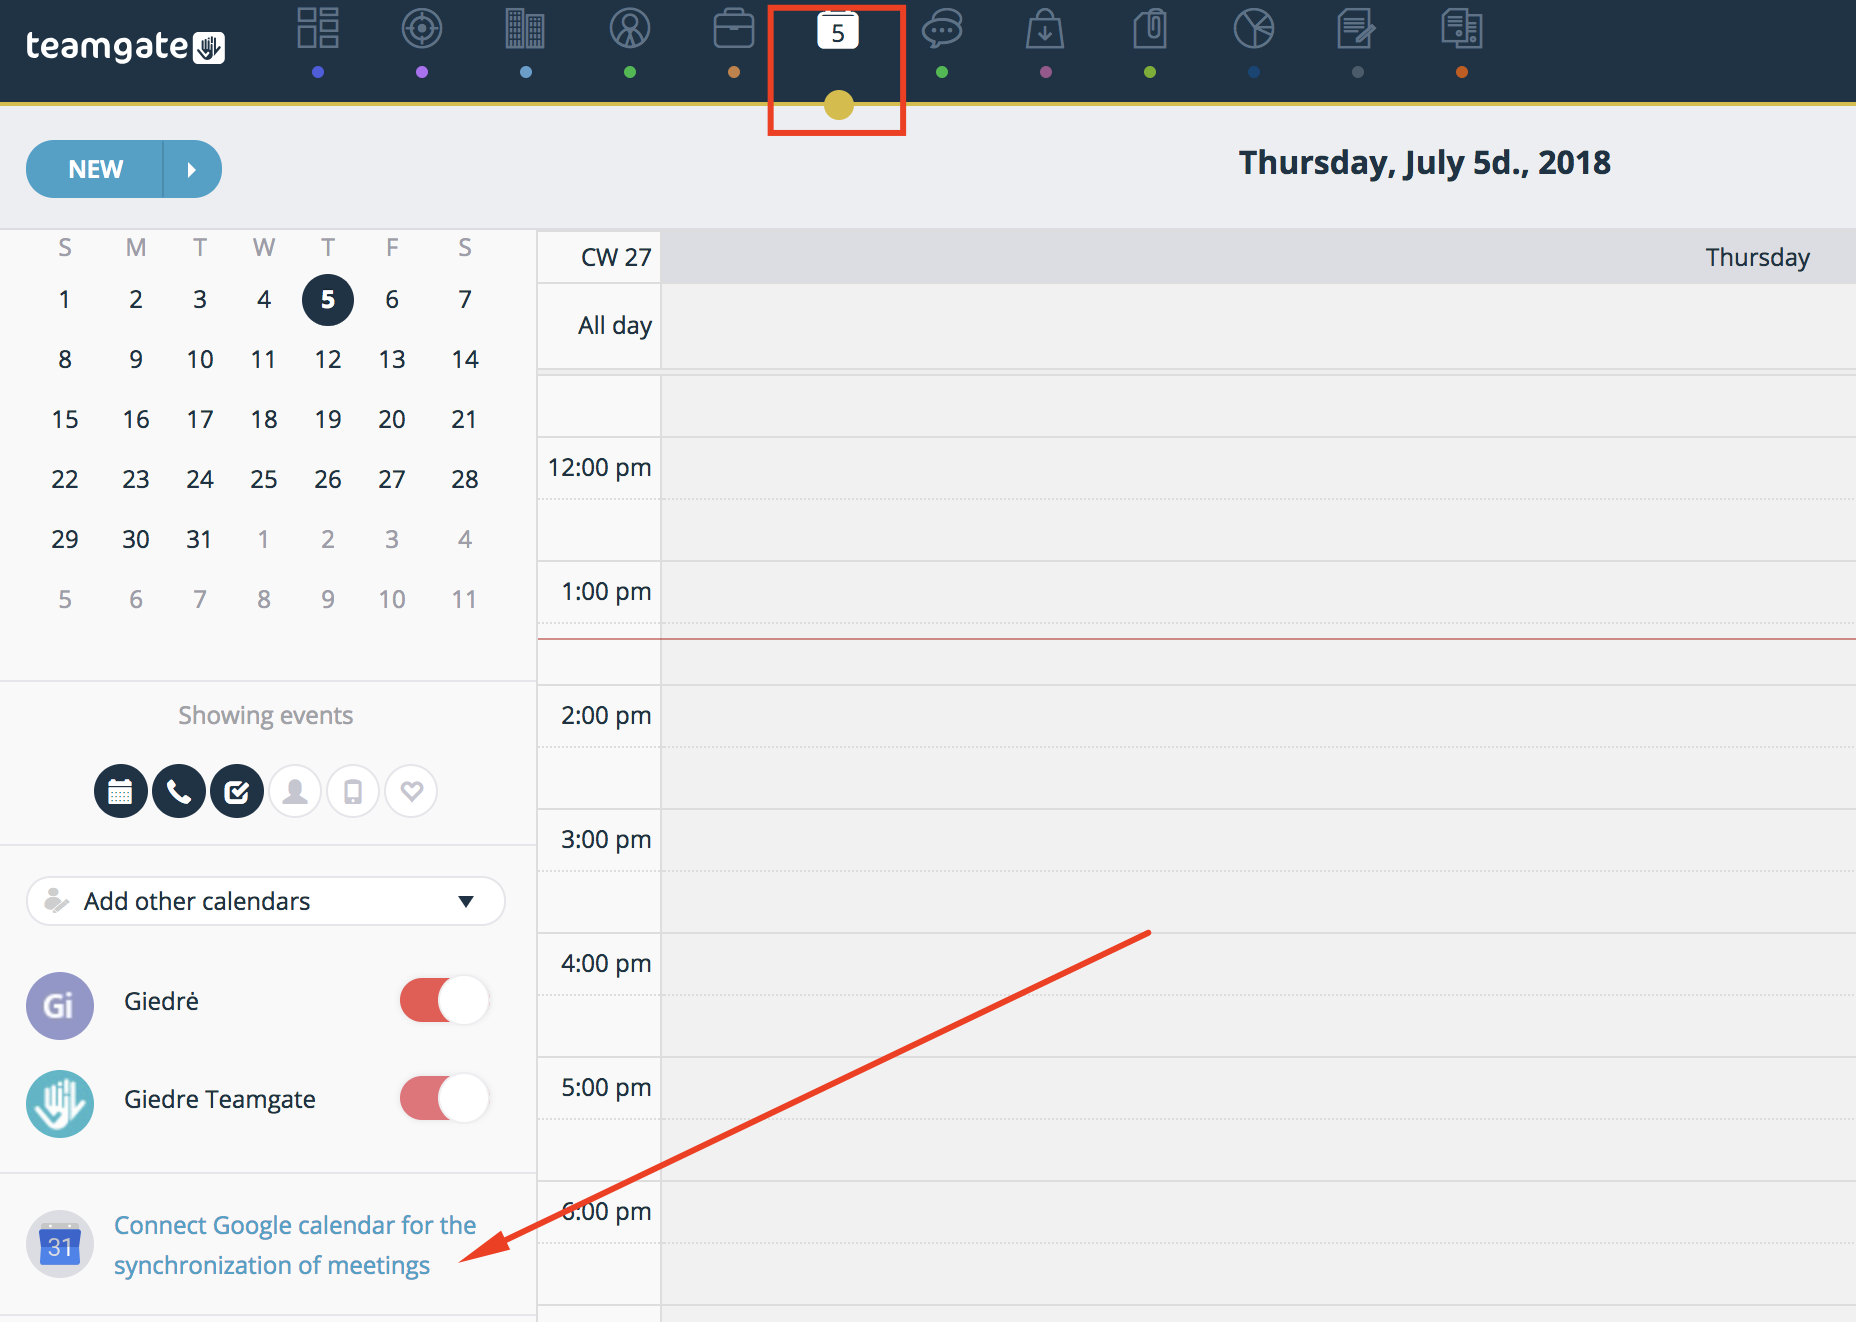 organizer-sync-meetings-with-google-calendar-teamgate-crm.png